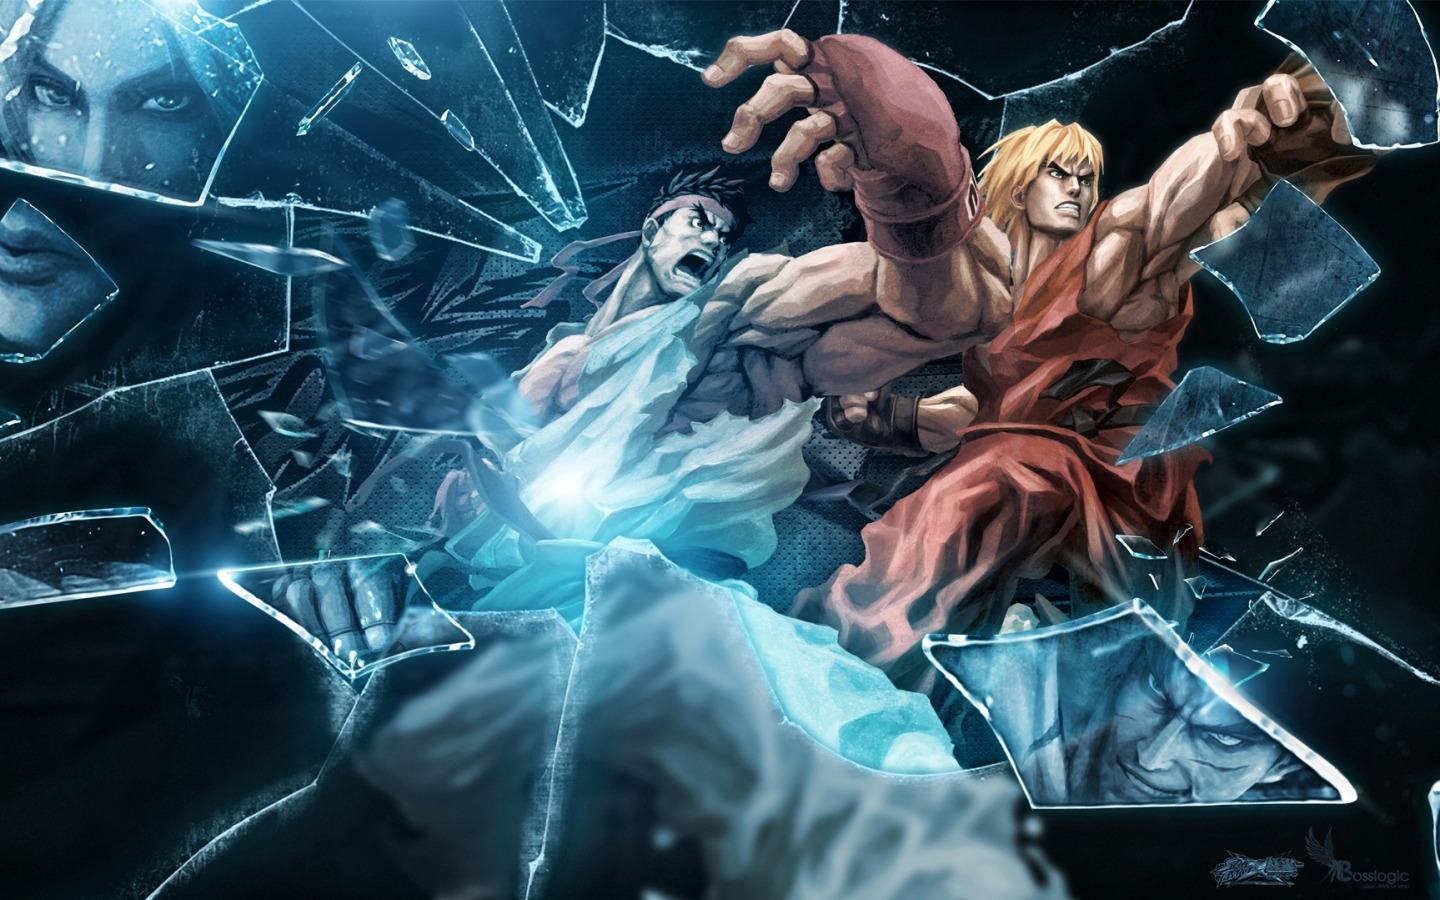 Street Fighter HD & Widescreen Wallpaper 0.290306104332901